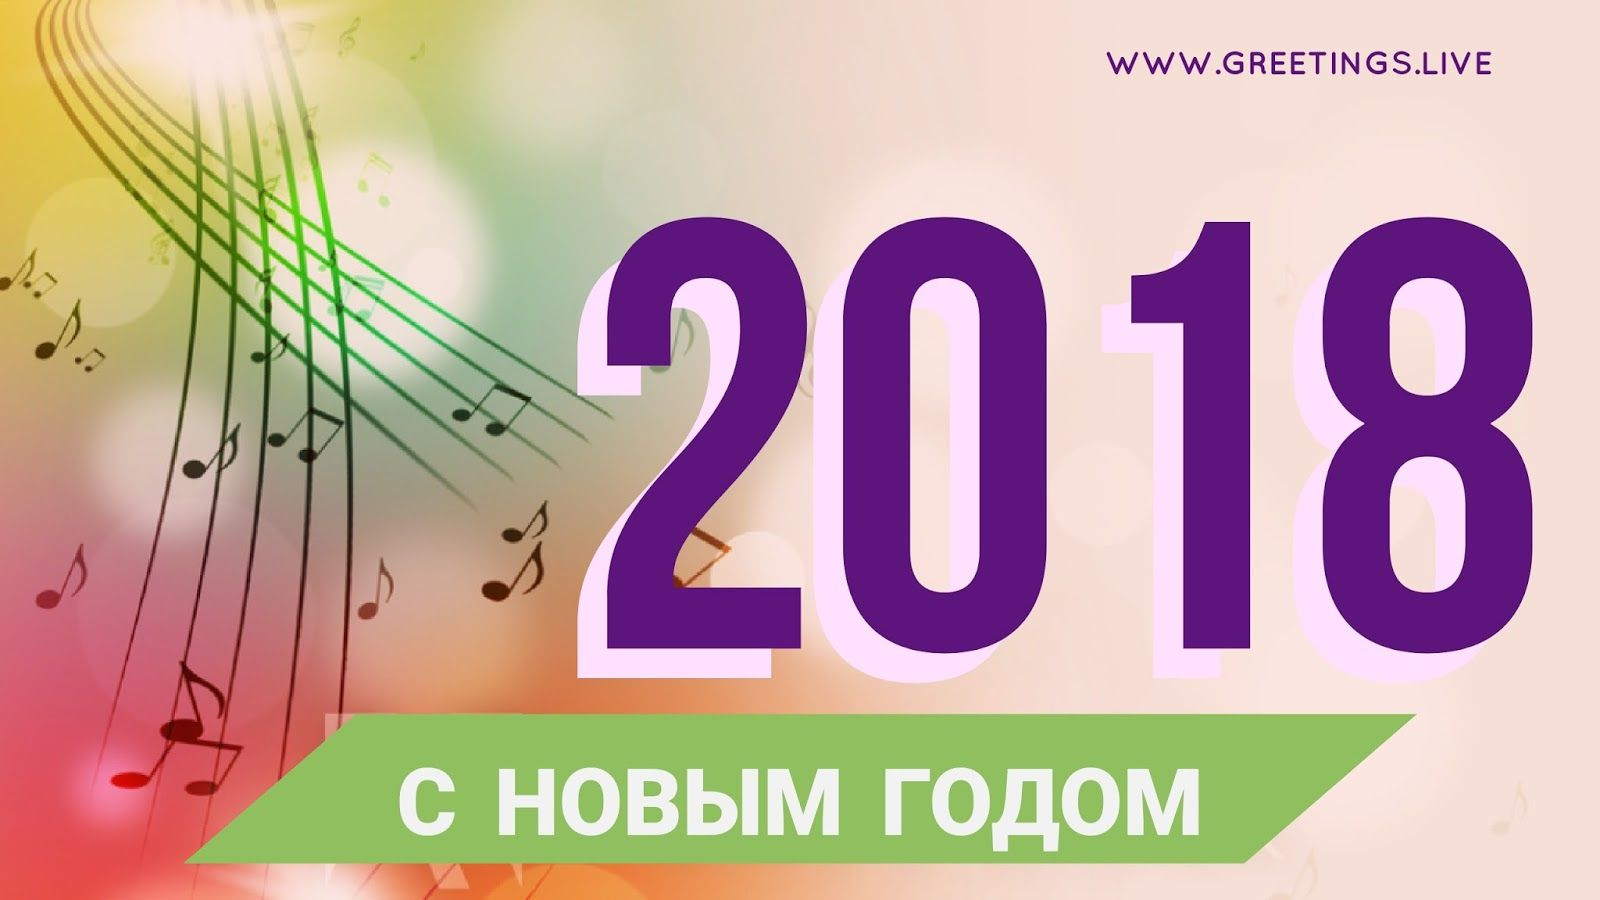 Cool greetings new year 2018 wishes in russian language cool greetings new year 2018 wishes in russian language kristyandbryce Gallery